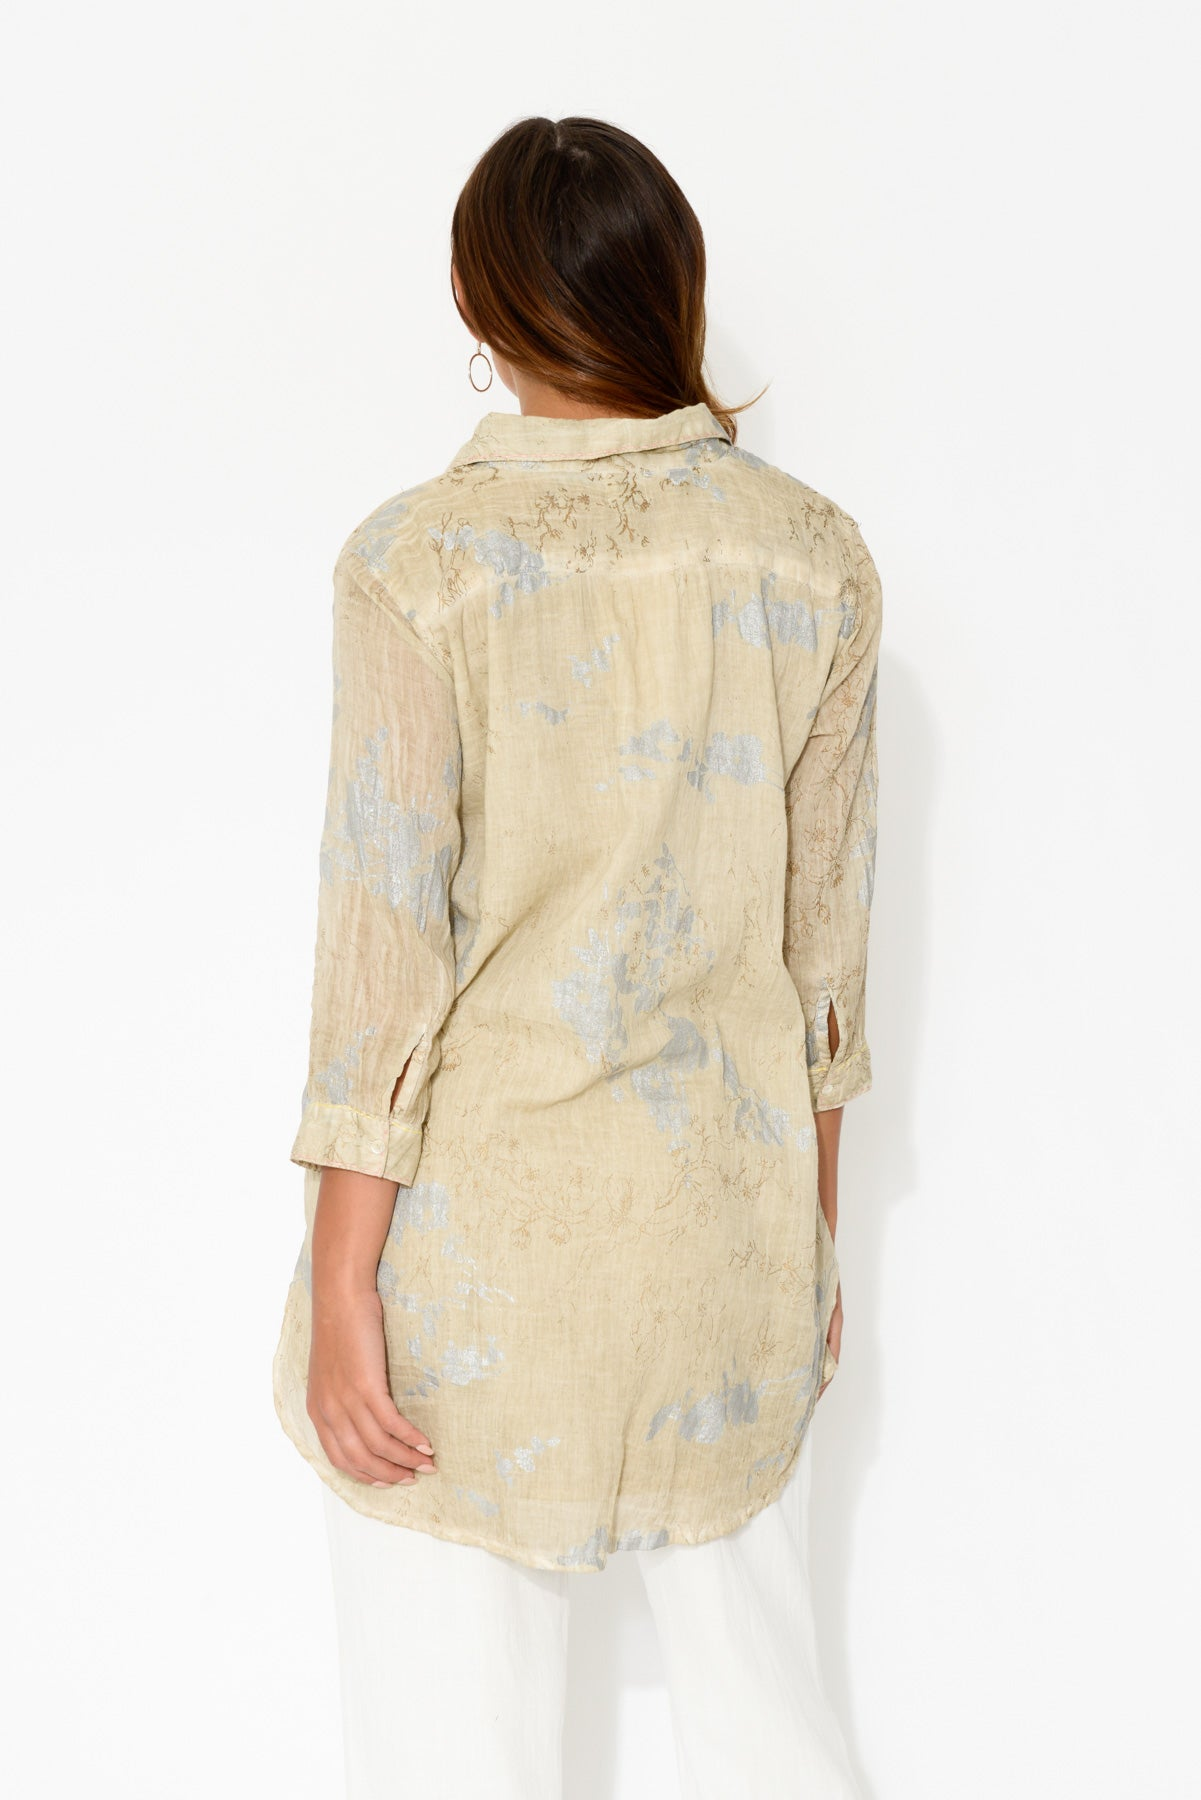 Molly Taupe Embroidered Cotton Tunic